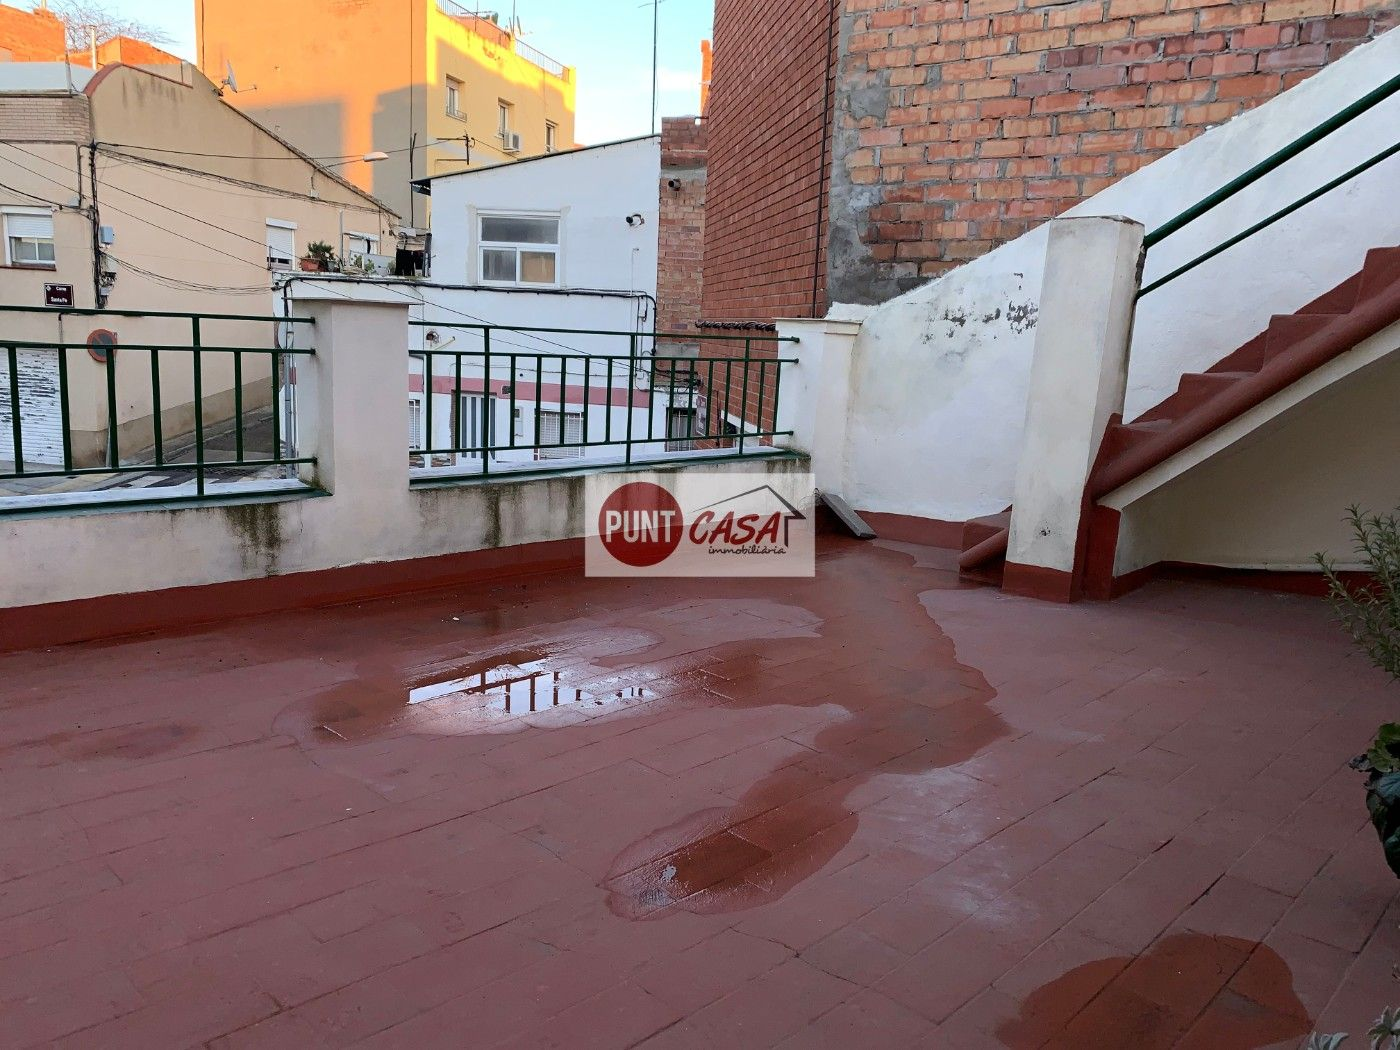 Casa in Carrer bovera, 4. Oportunidad en magraners